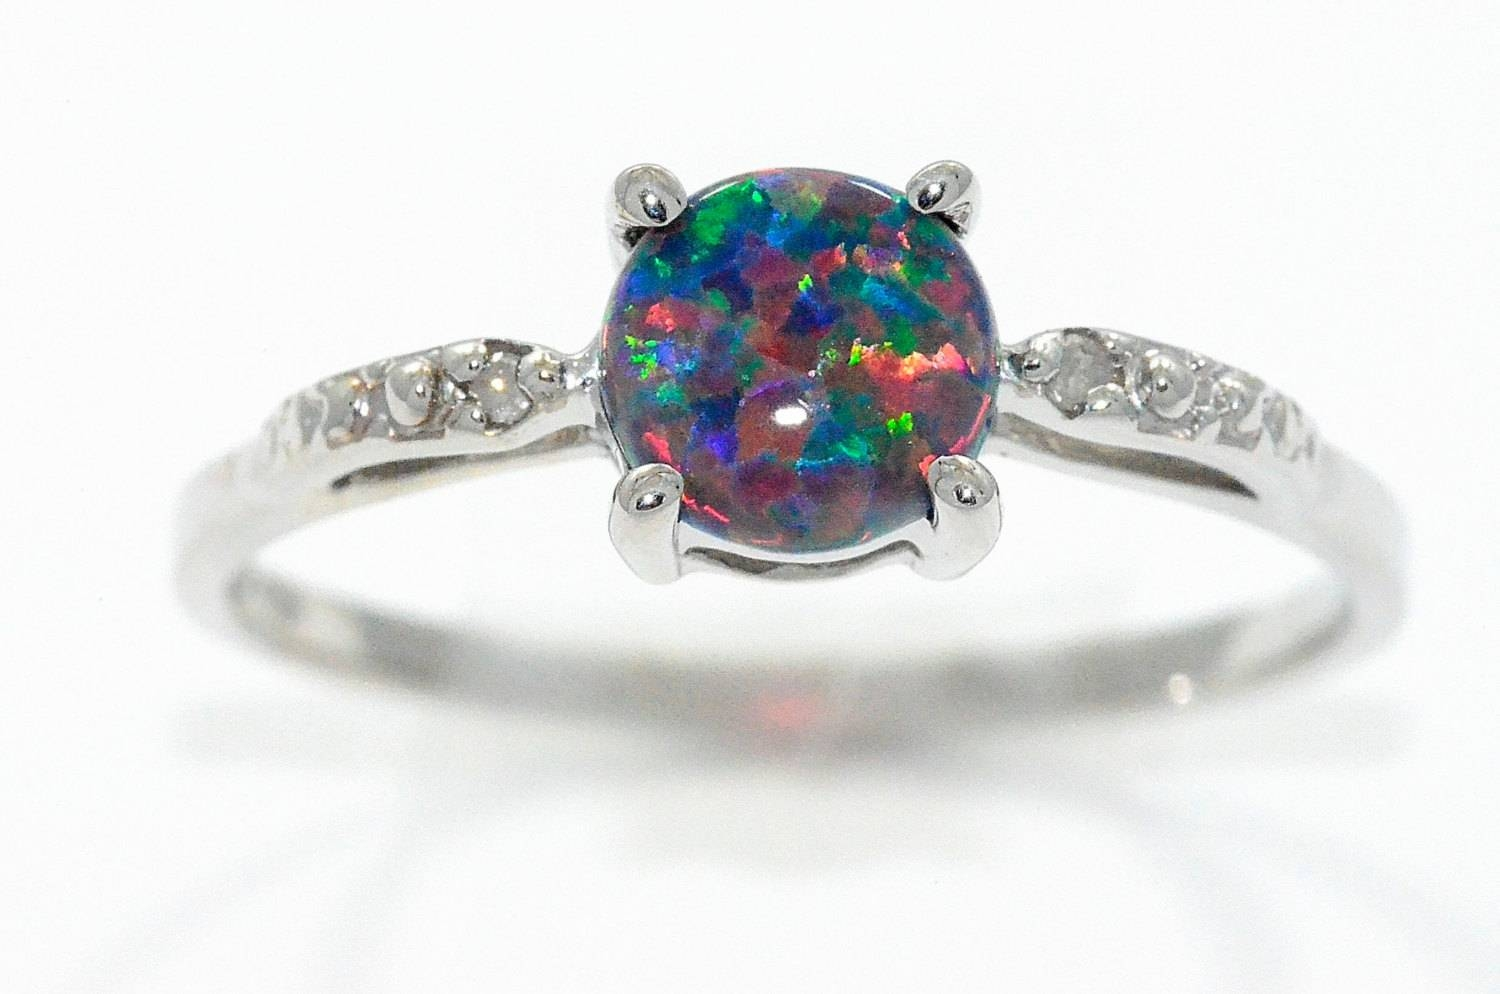 15 Best Collection Of Australia Opal Engagement Rings